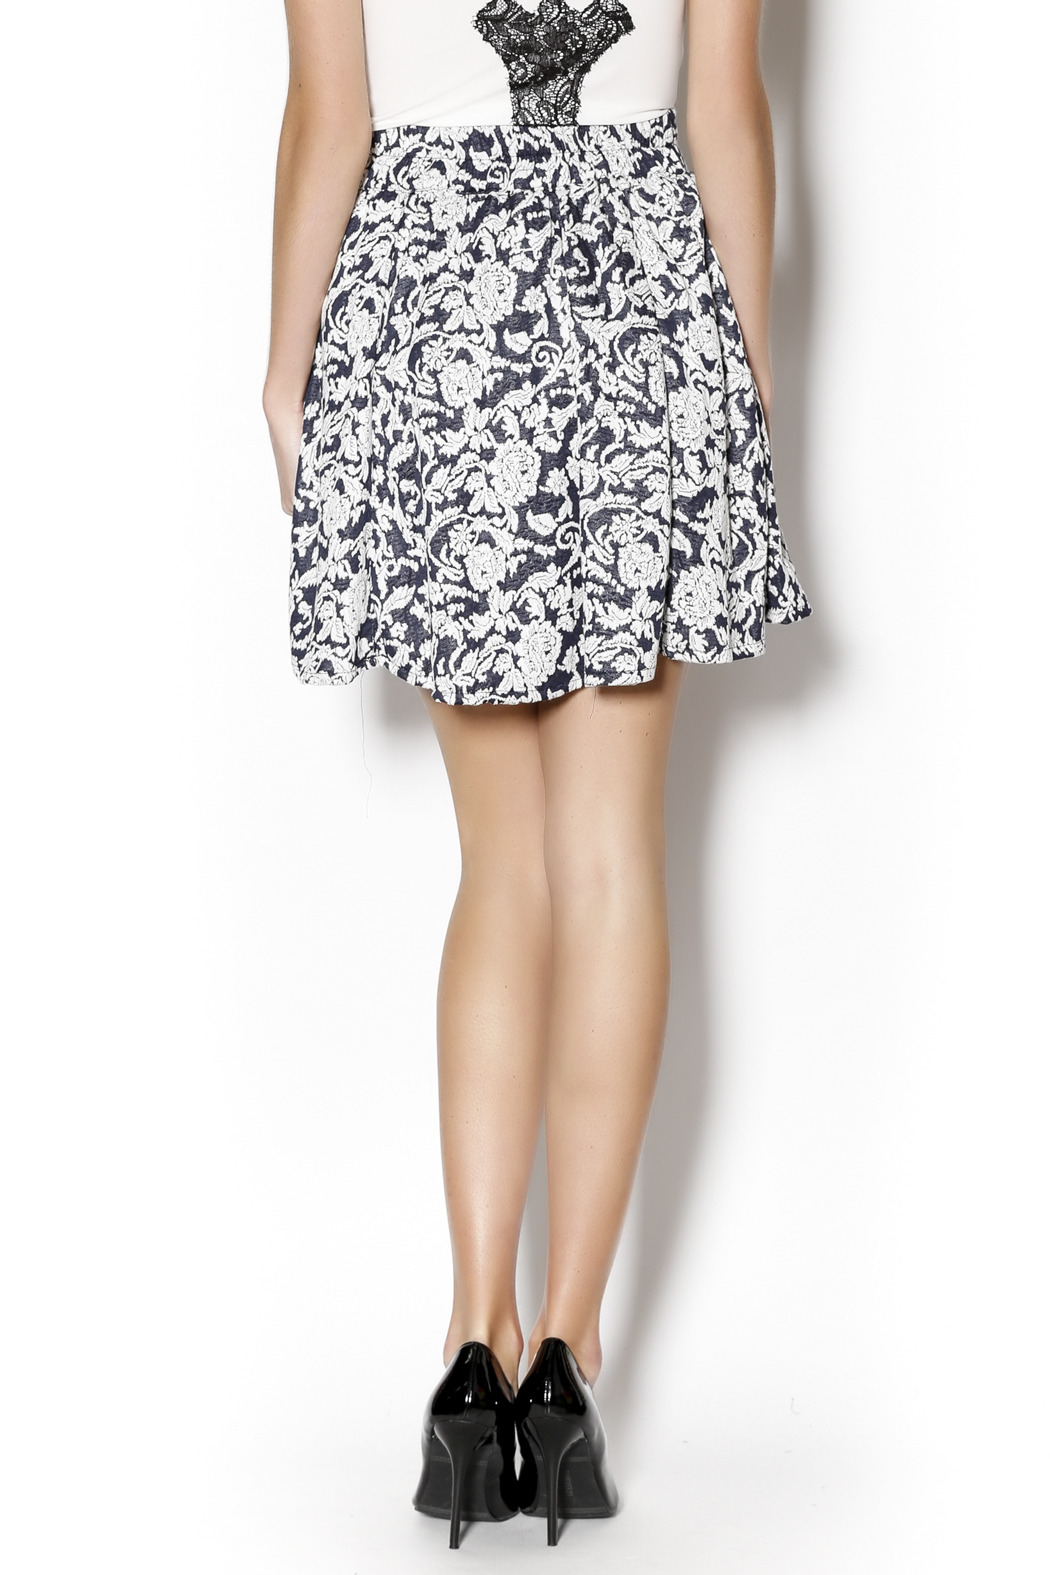 Angie Floral Swing Skirt - Back Cropped Image